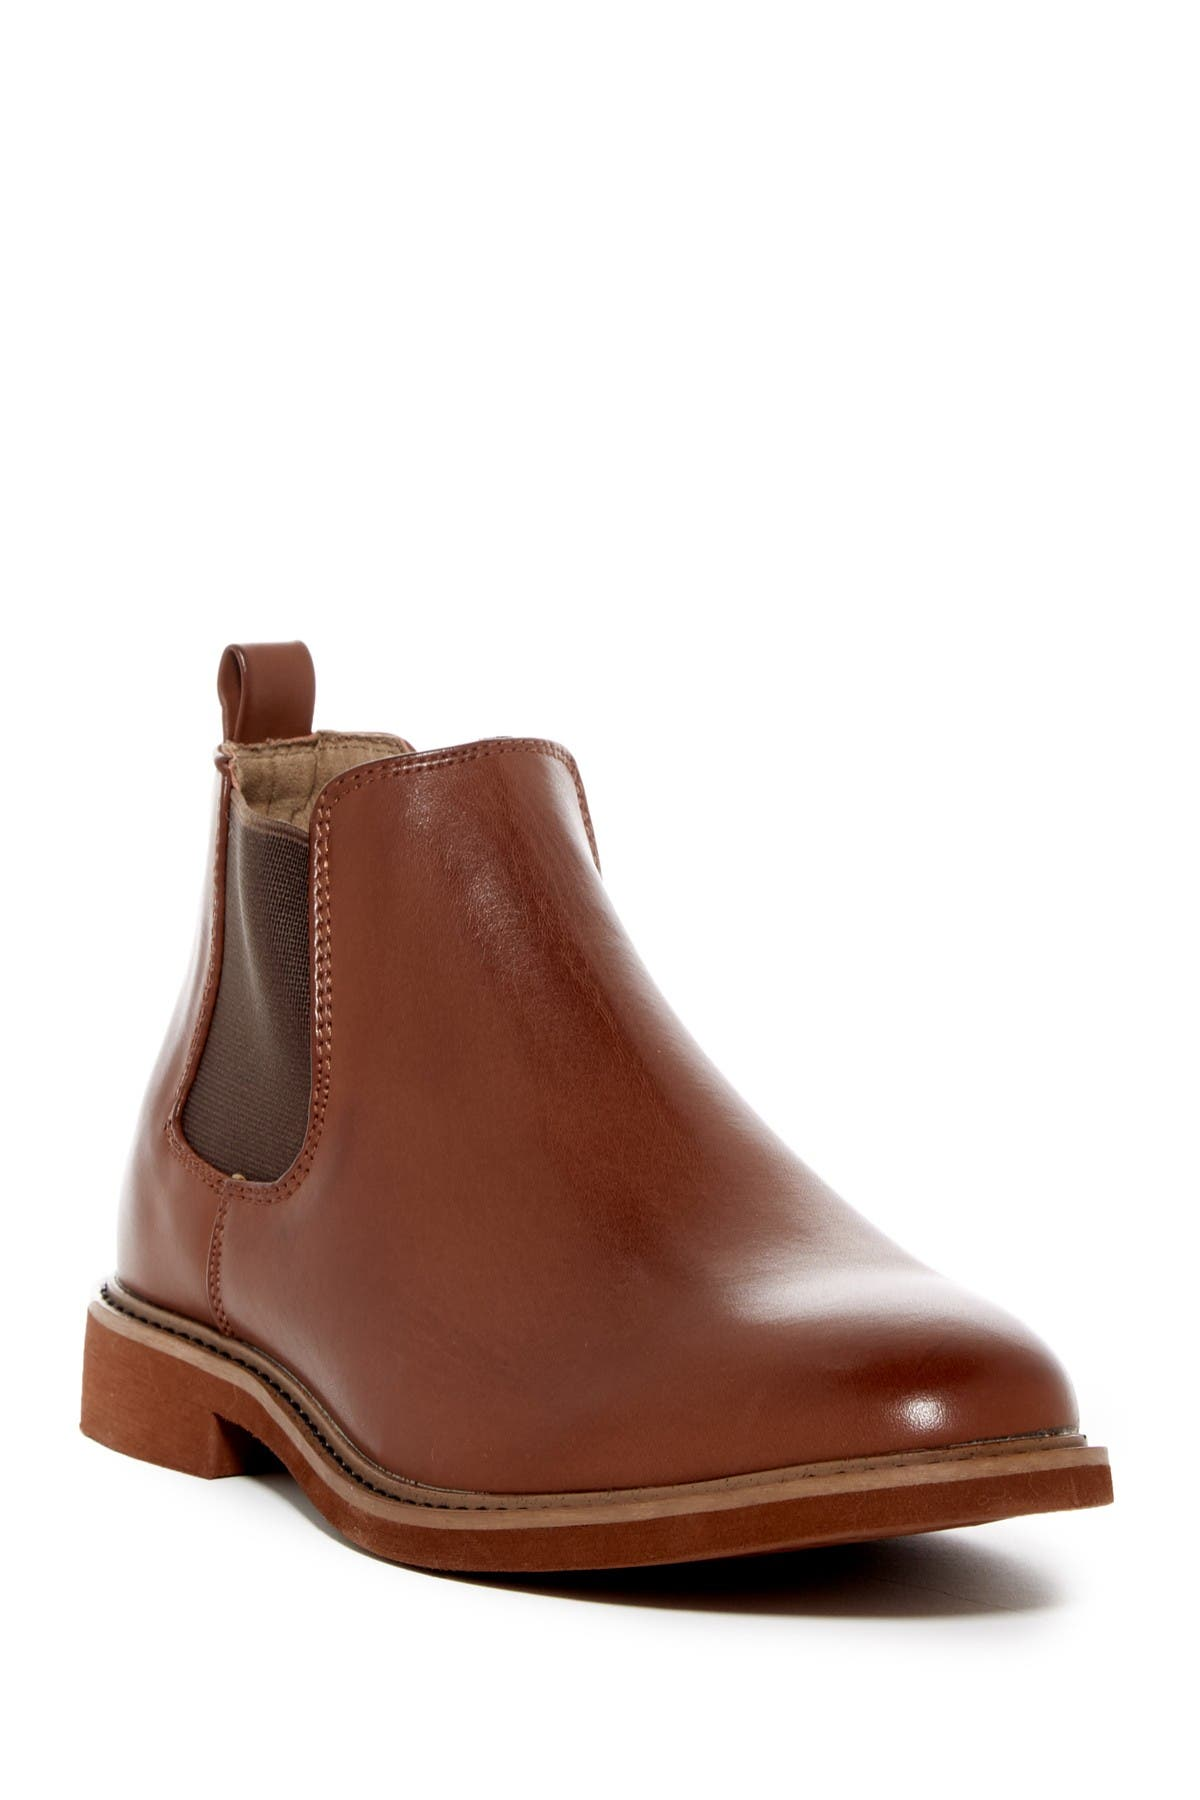 Image of Deer Stags Sammy Chelsea Boot